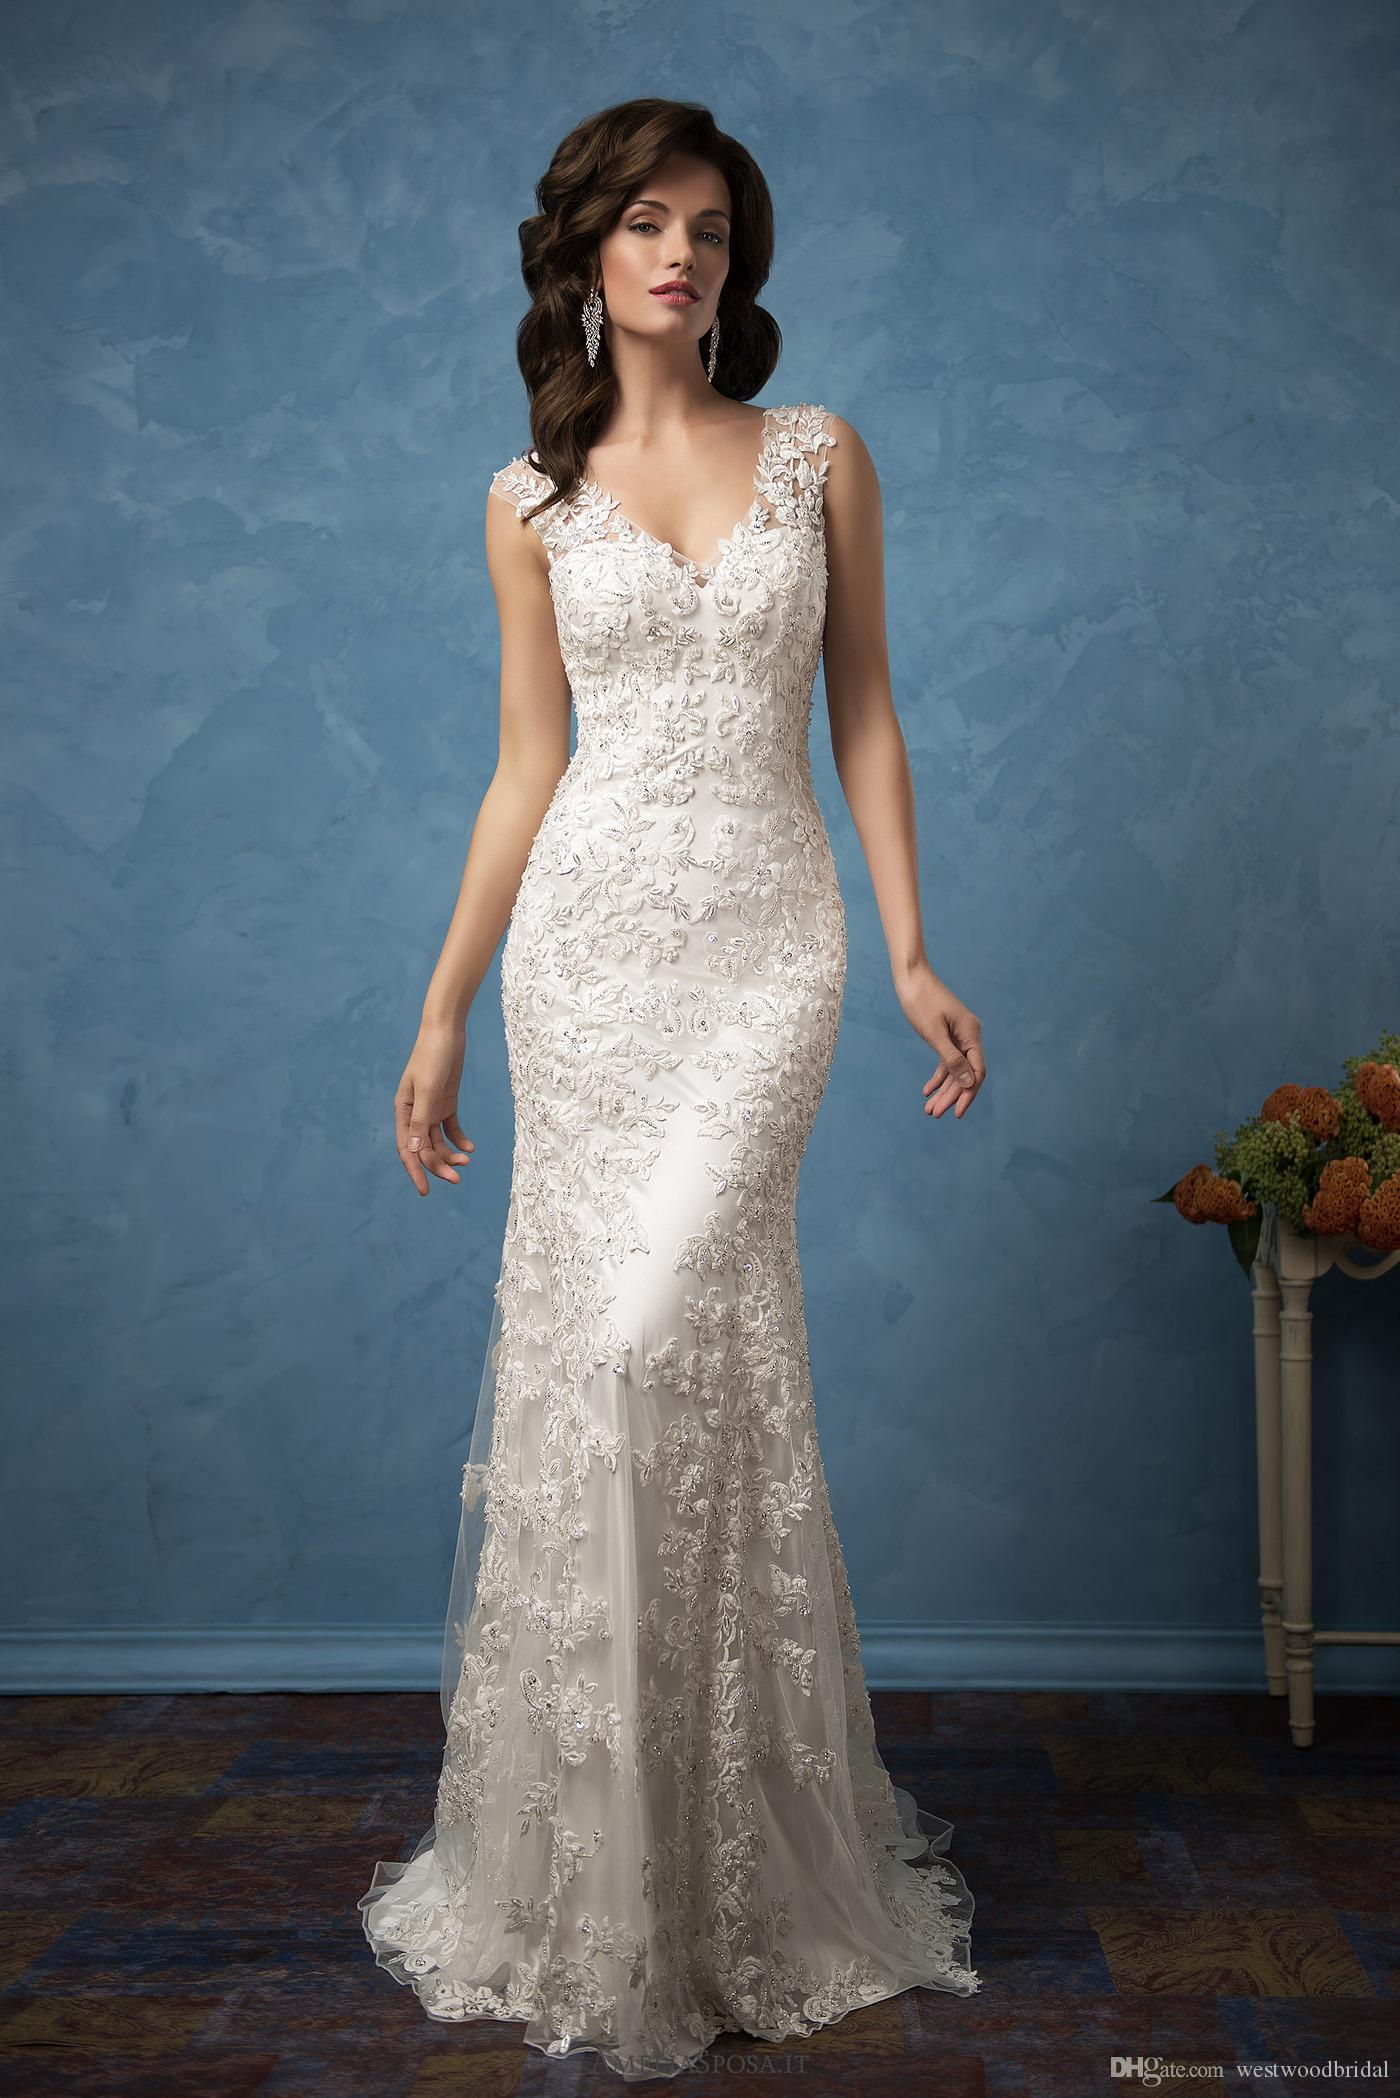 Outstanding Victoria Beckham Wedding Dresses Image Collection - All ...